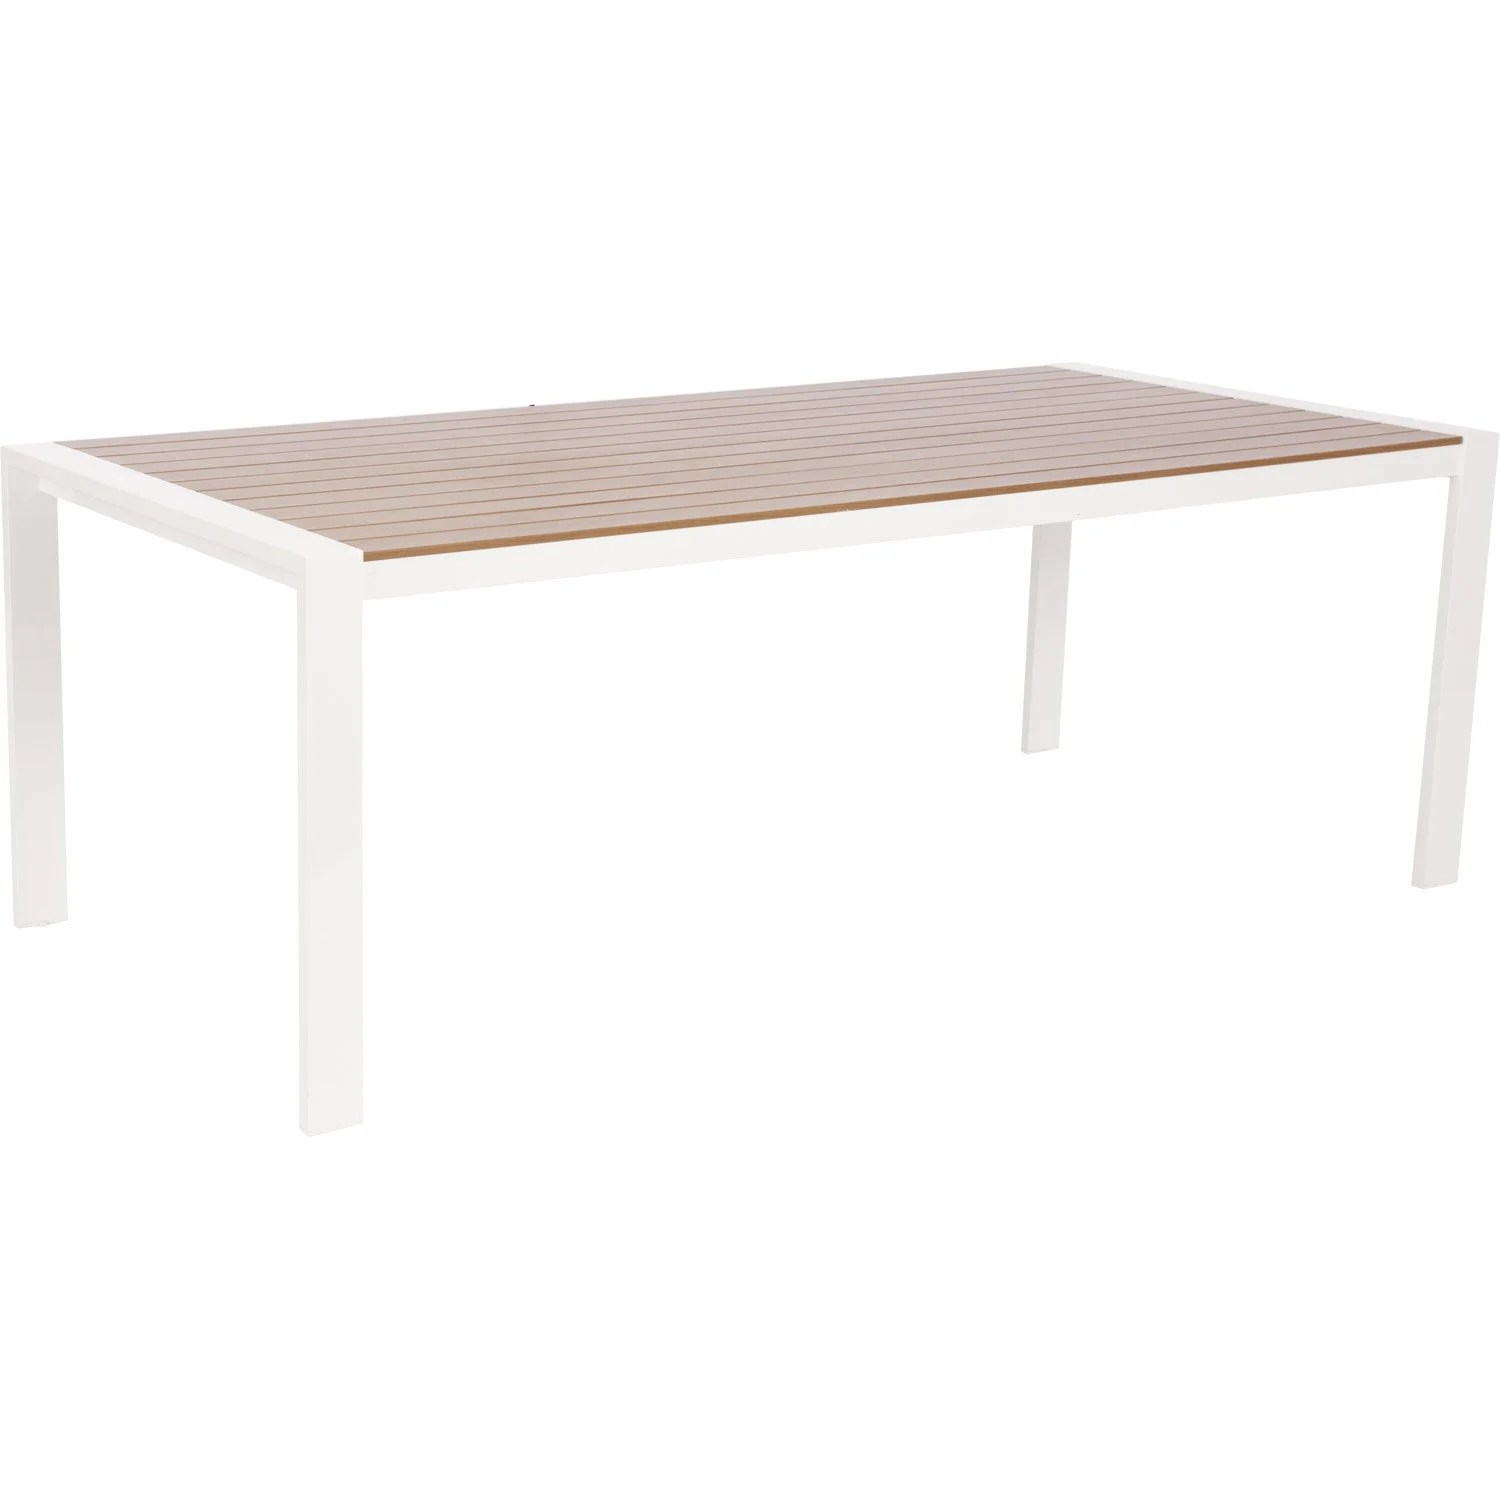 Table Blanche Rectangulaire Table De Jardin Port Nelson Rectangulaire Blanc